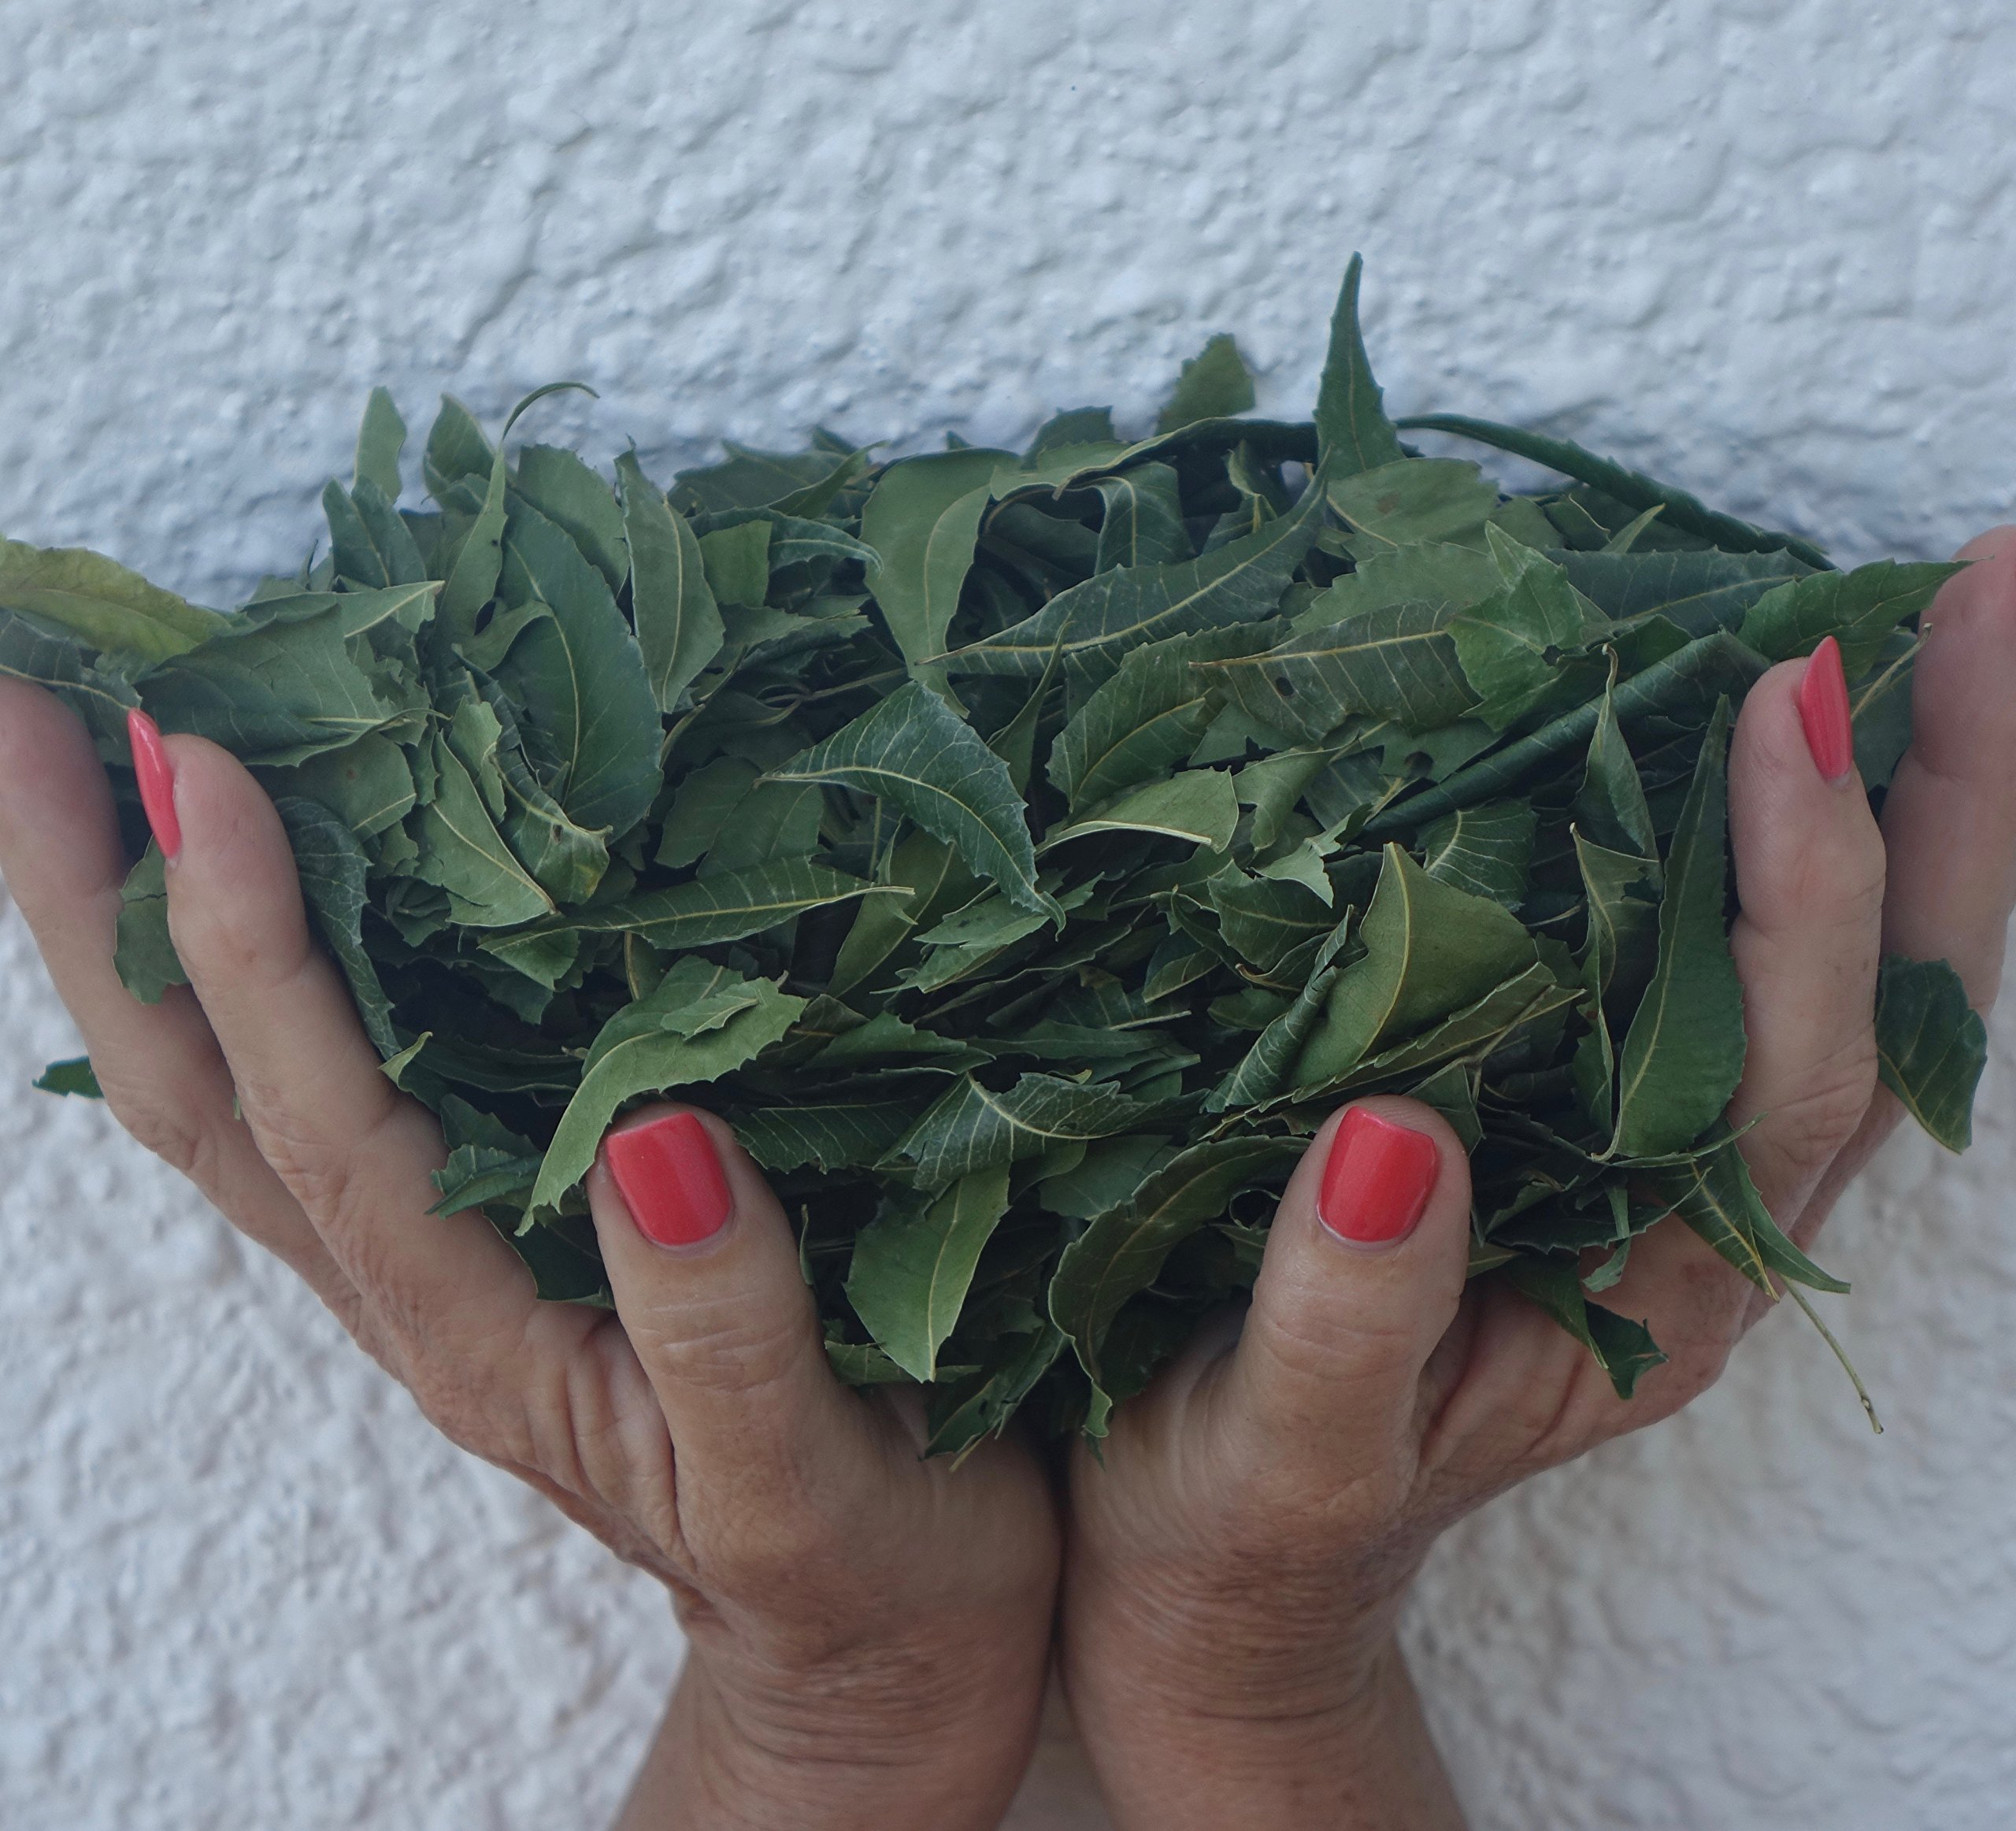 Neem Leaves Whole, Wild Harvested Shade Dried. Premium, Organic, Green (5 Oz) for Tea, Boost Immune System, Bathing, Skin Irritations! All About Neem USA!